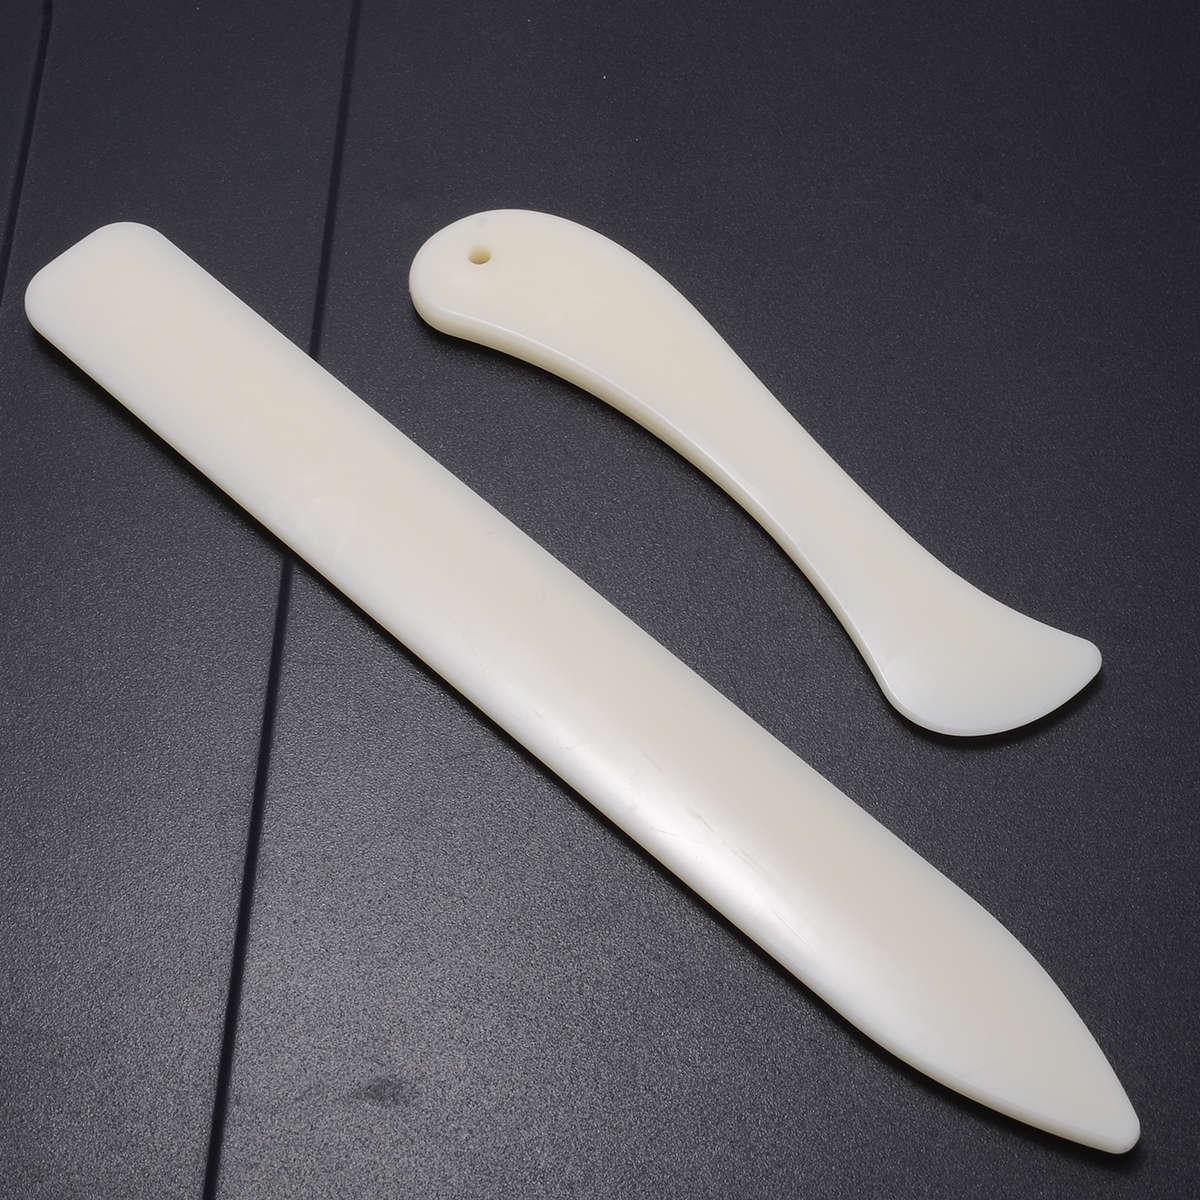 2 Sizes Handmade Leather Craft Trimming Tool Bone Leathercraft Edge Trimmers DIY Supplies For Working Cutting